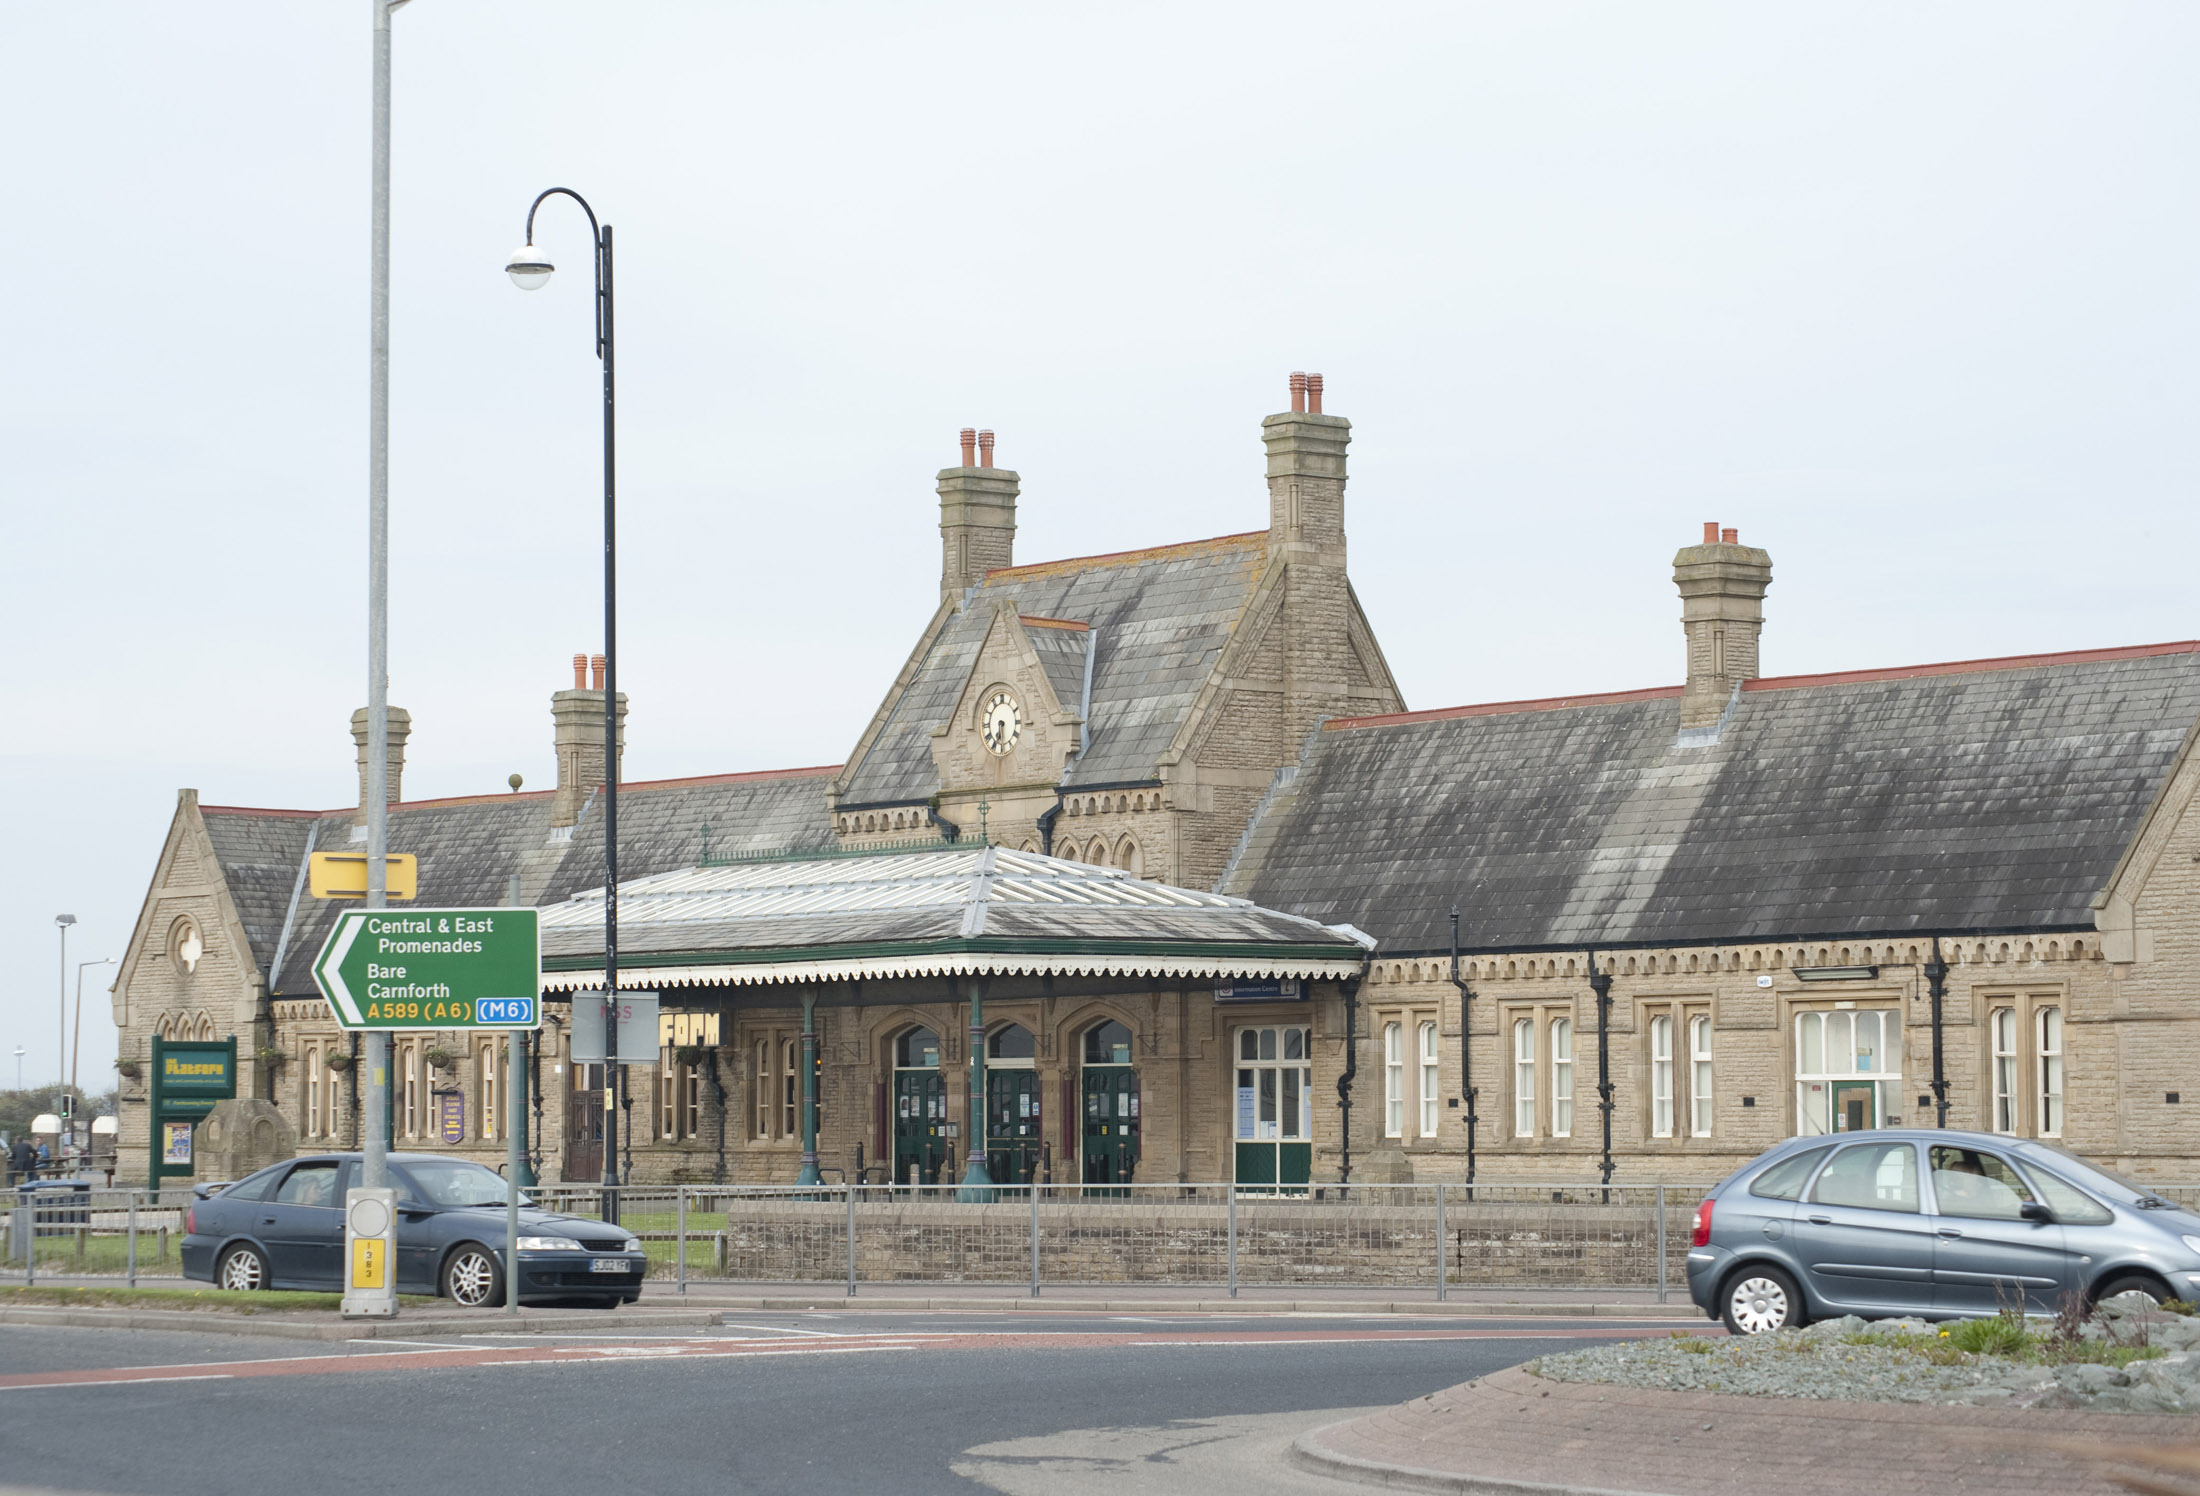 in order to thwart the few remaining tourists who persited in visiting morecambe the promenade railway station was closed in 1994, ironically the tourist information centre is still housed in the old station building.